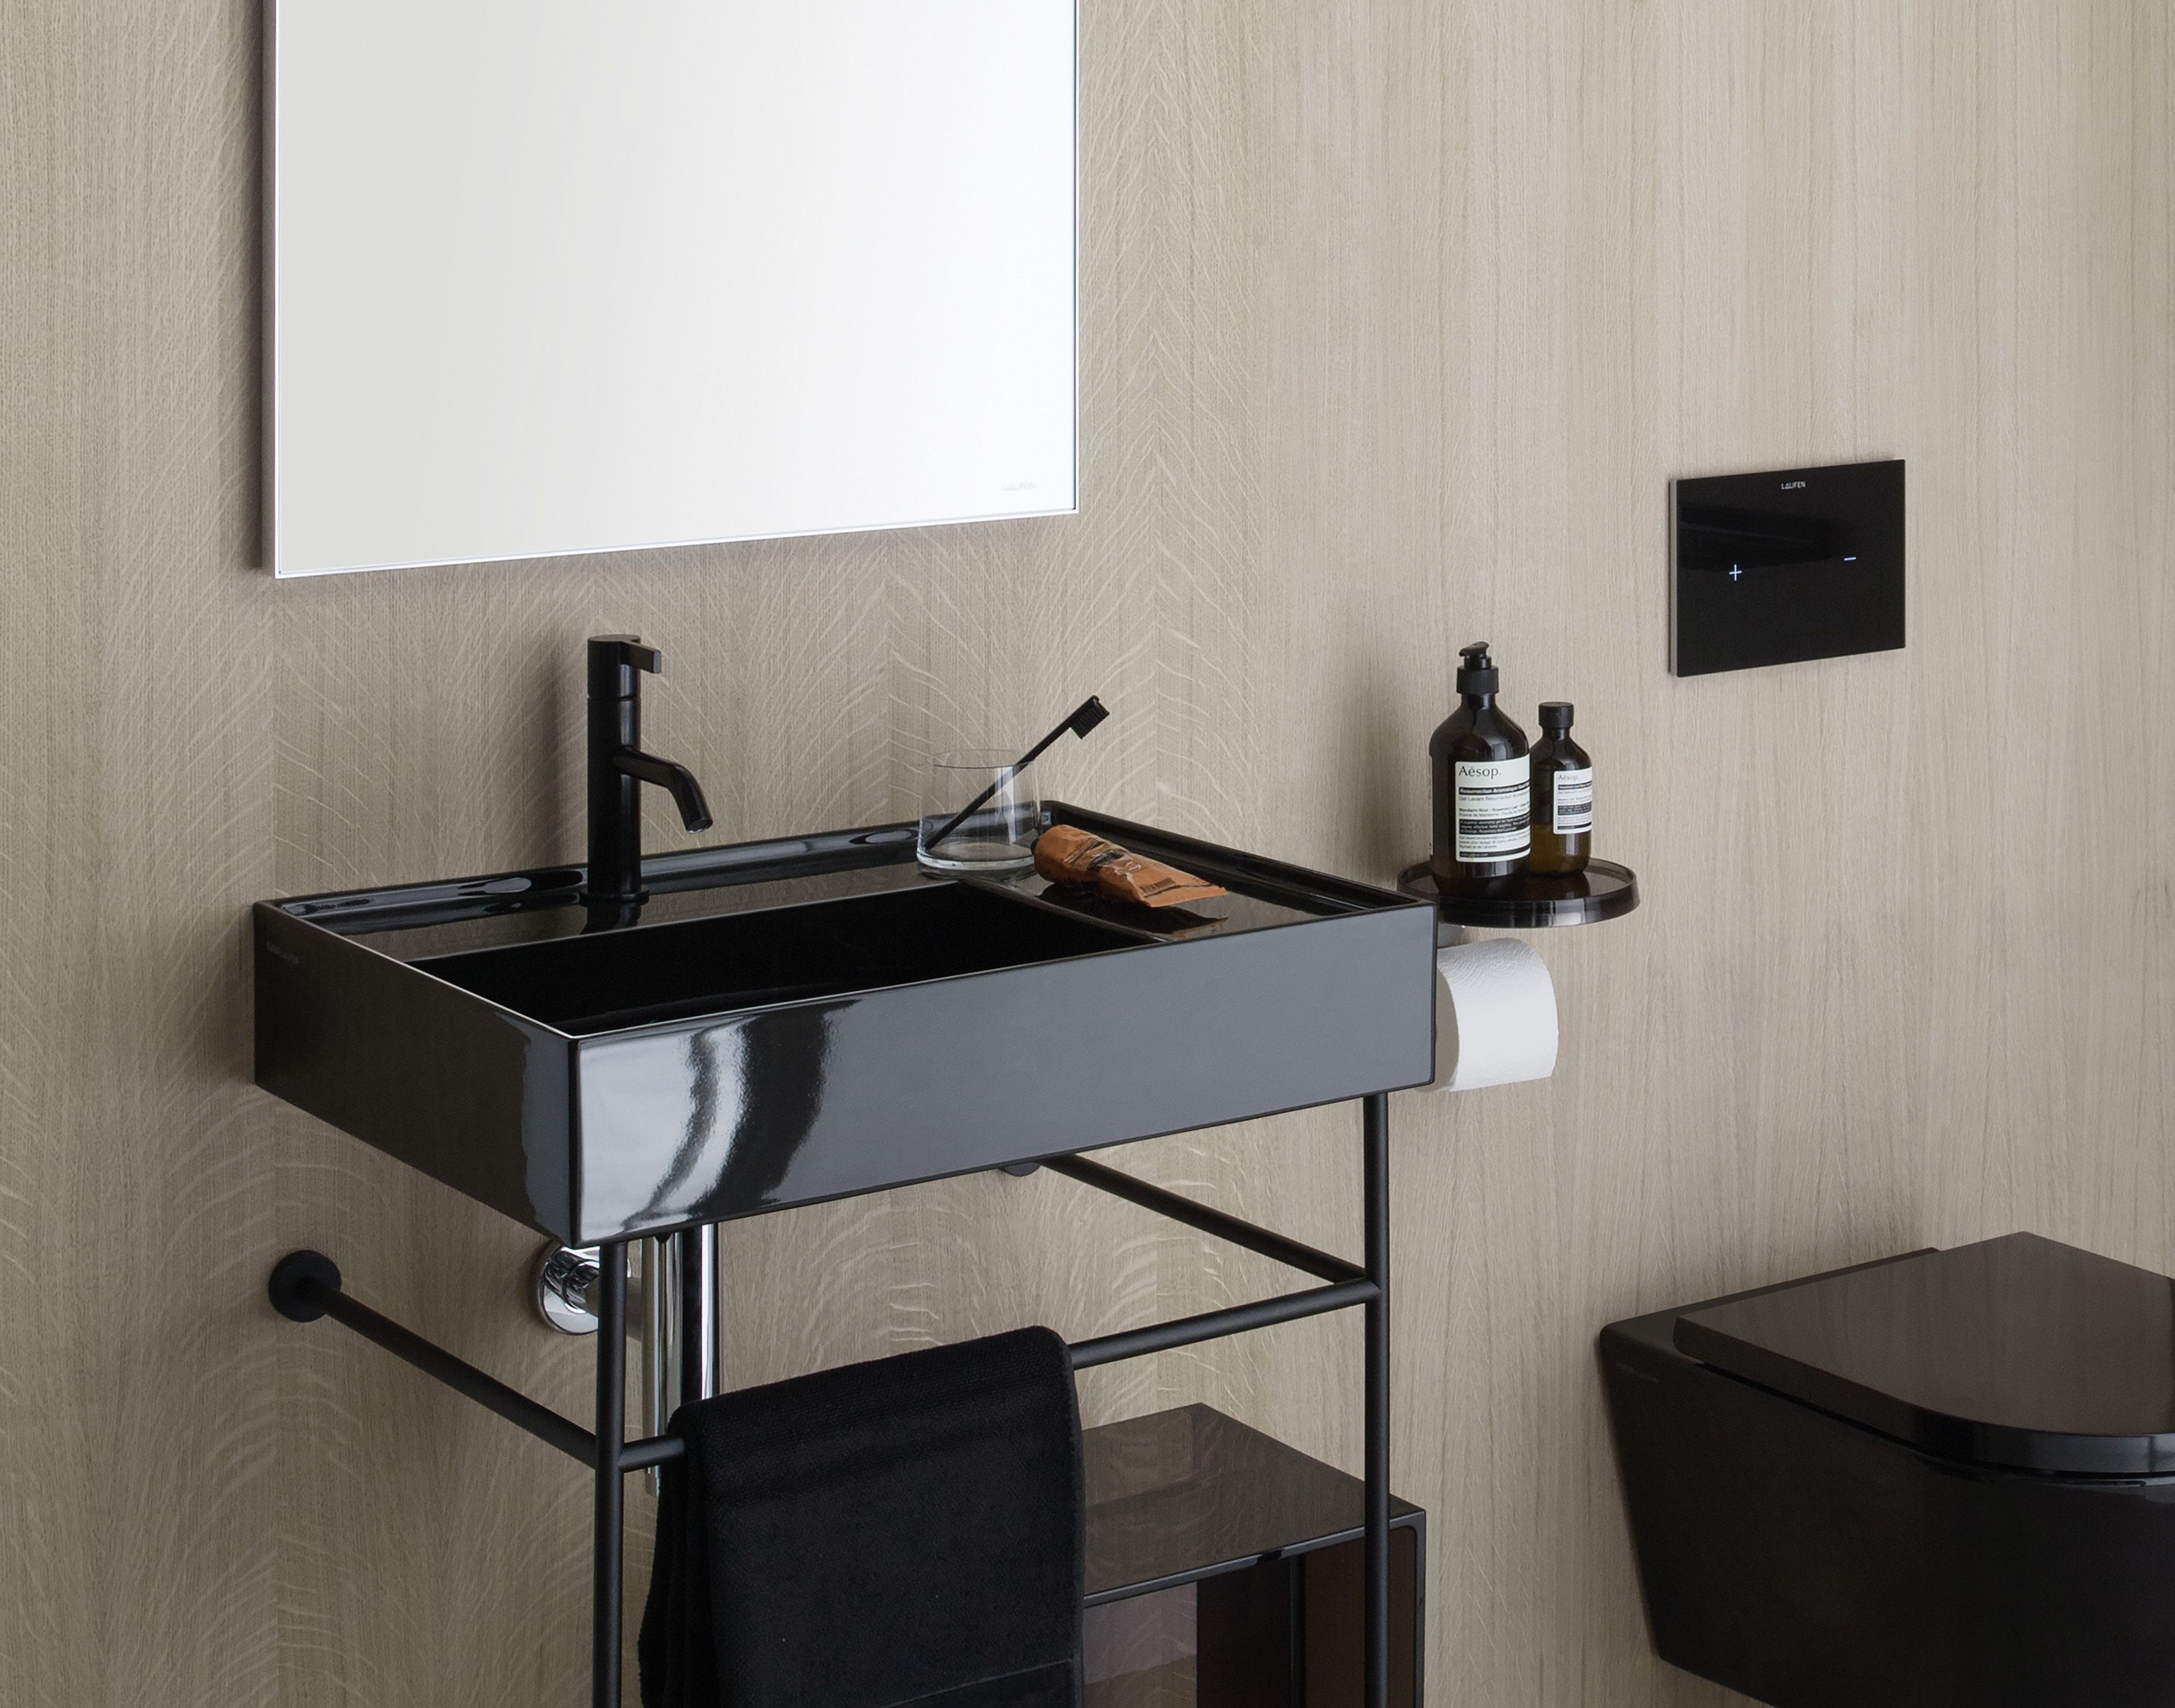 Kartell Bagno ~ Black in the bathroom? the new kartell by laufen washbasin with